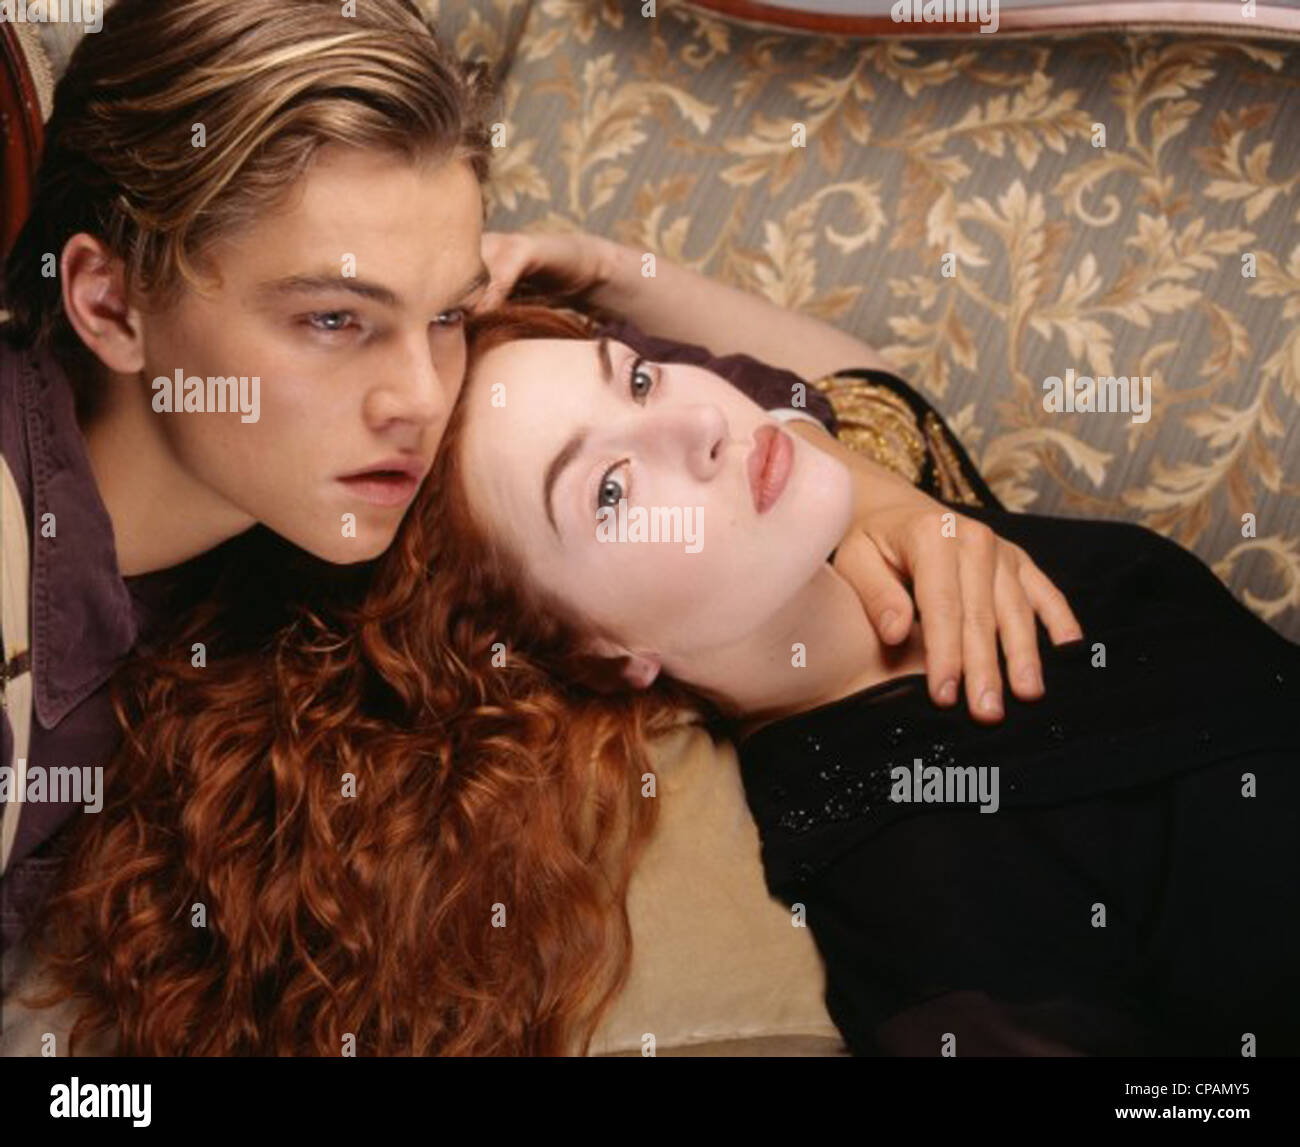 TITANIC (1997) LEONARDO DICAPRIO, KATE WINSLET, JAMES CAMERON (DIR) 045 MOVIESTORE SAMMLUNG LTD Stockbild